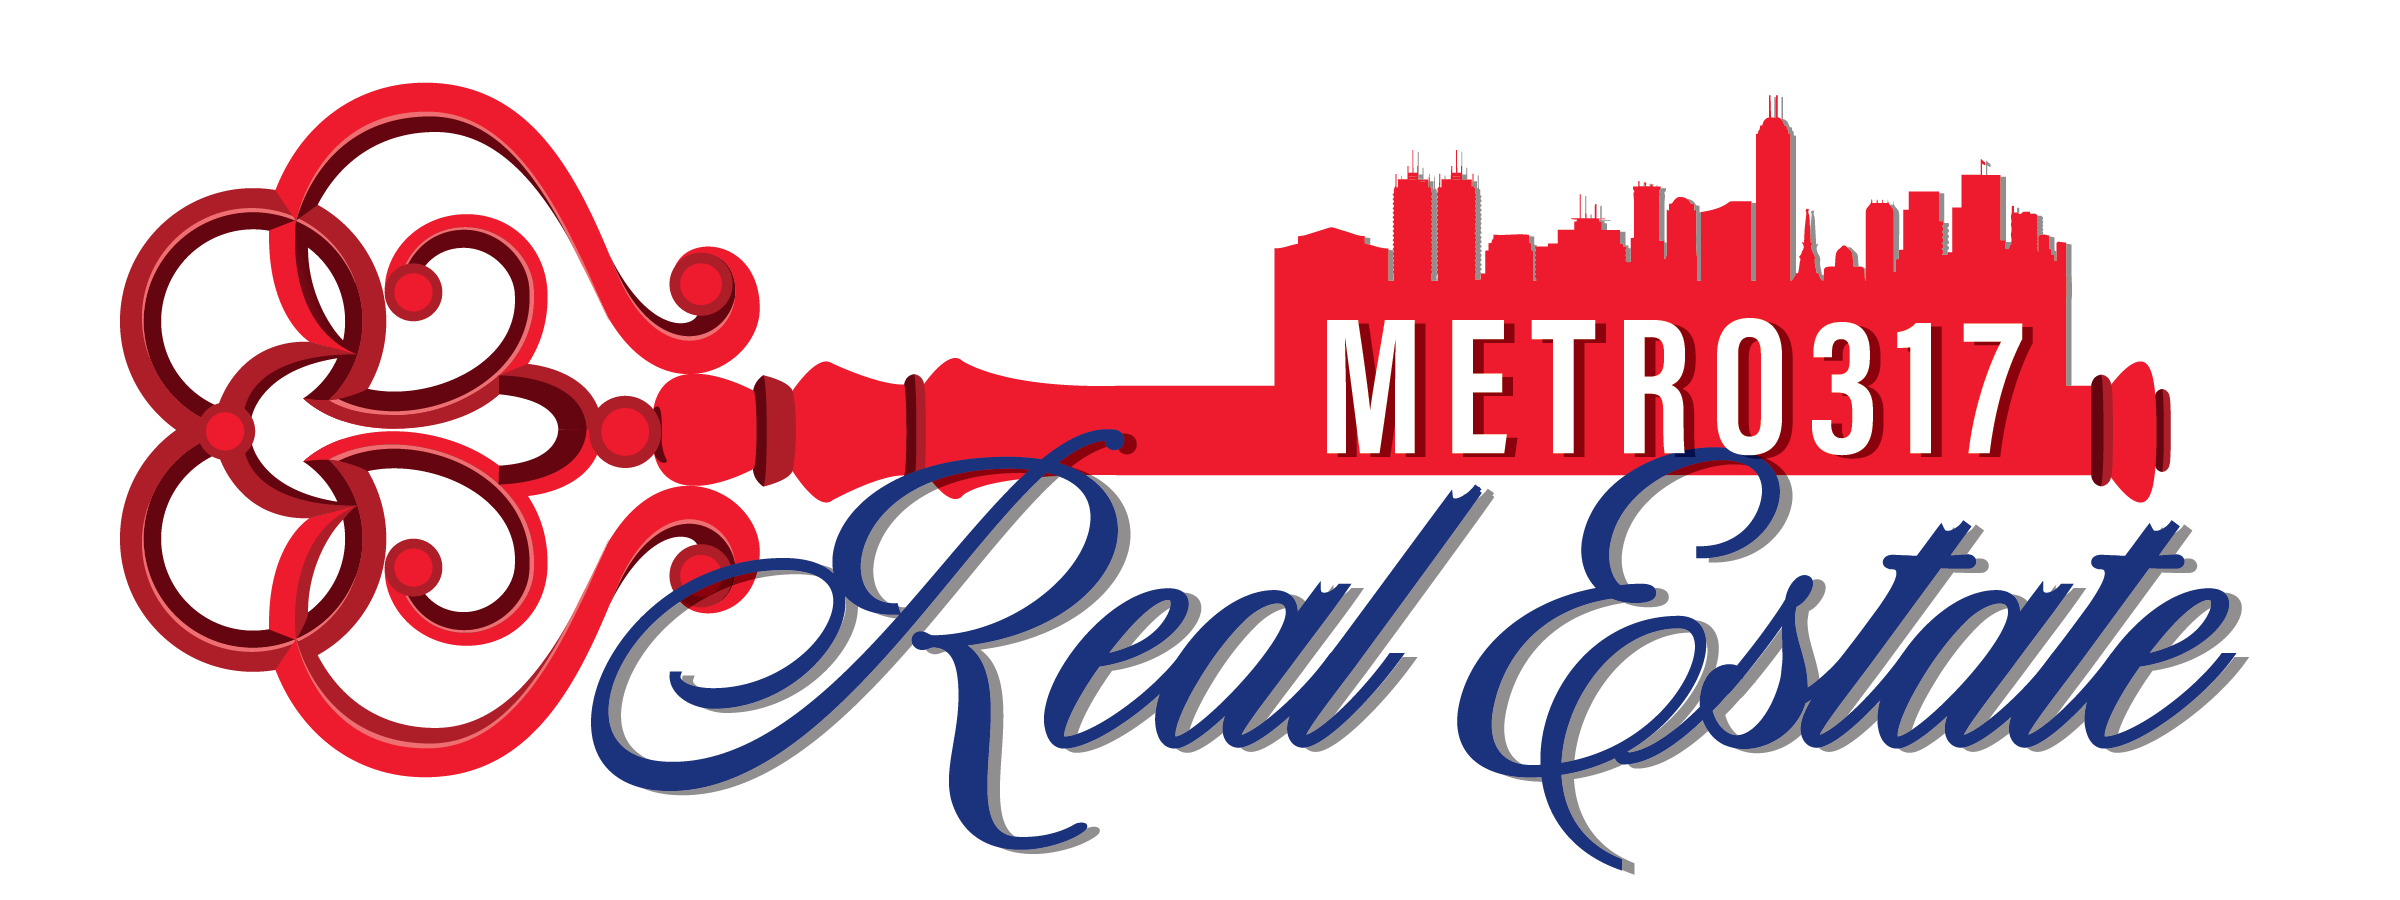 Metro317 Real Estate